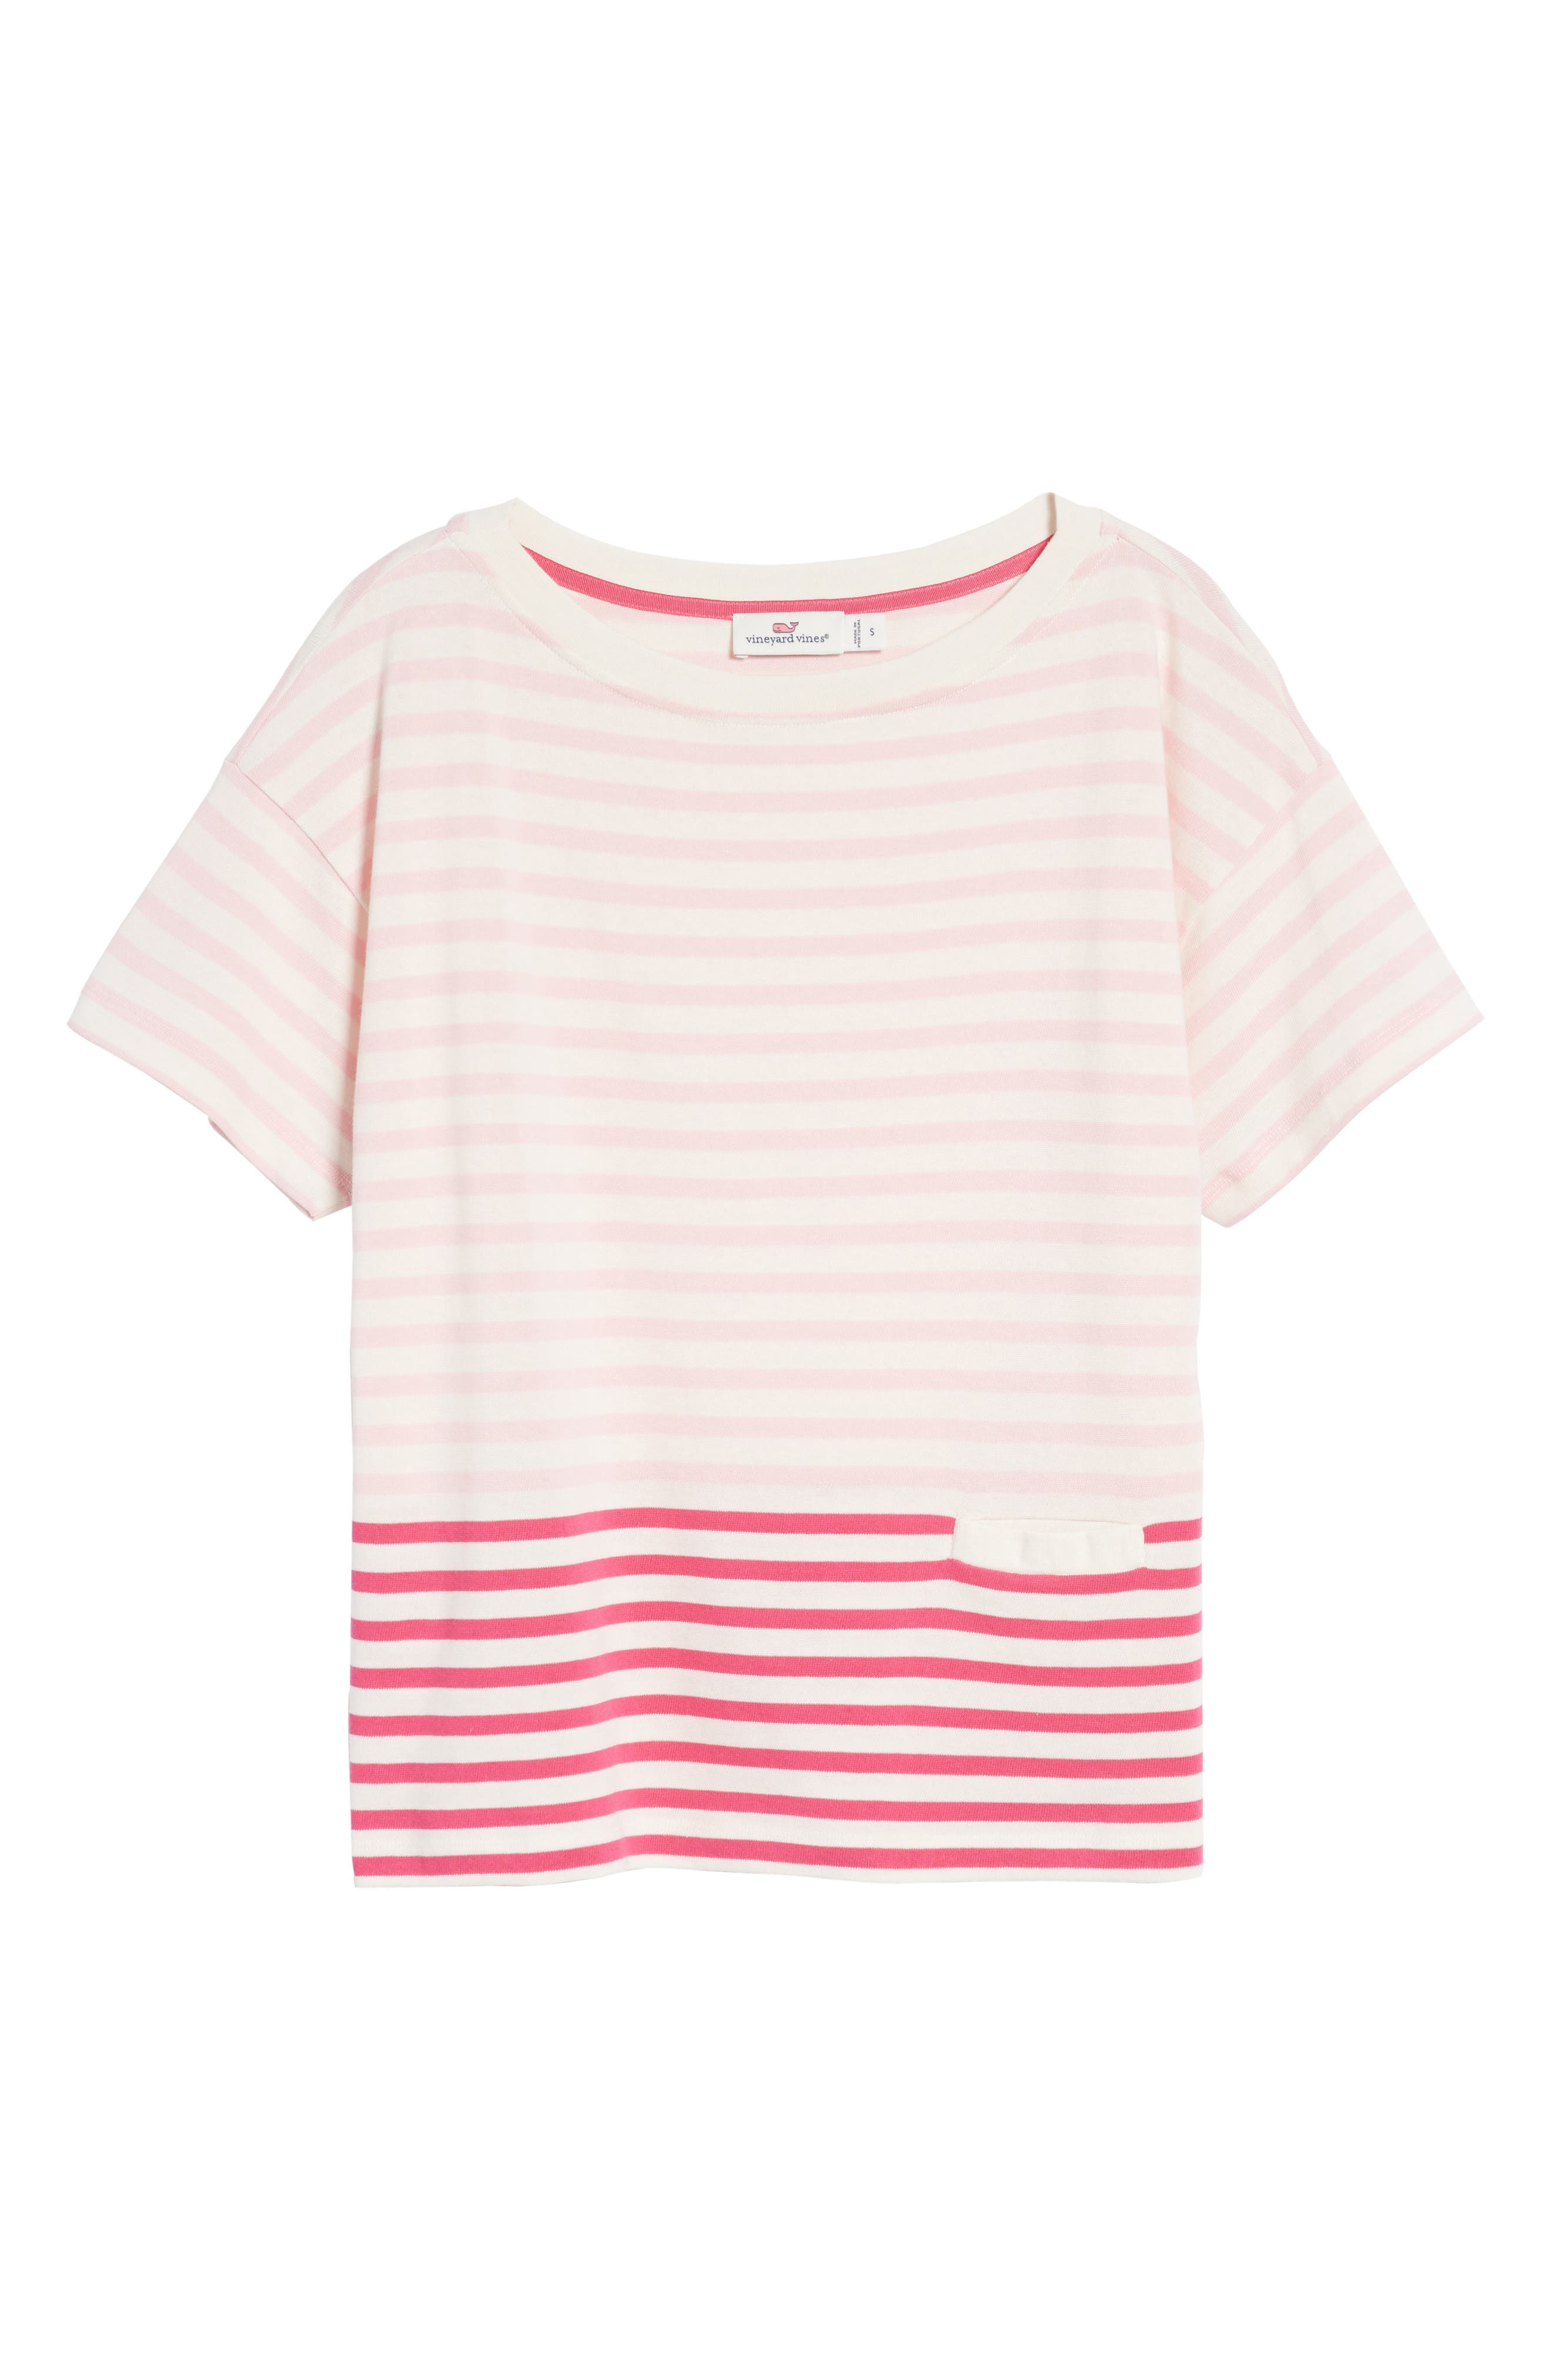 Mixed Stripe Pocket Cotton Knit Top,                             Alternate thumbnail 7, color,                             Rhododendron